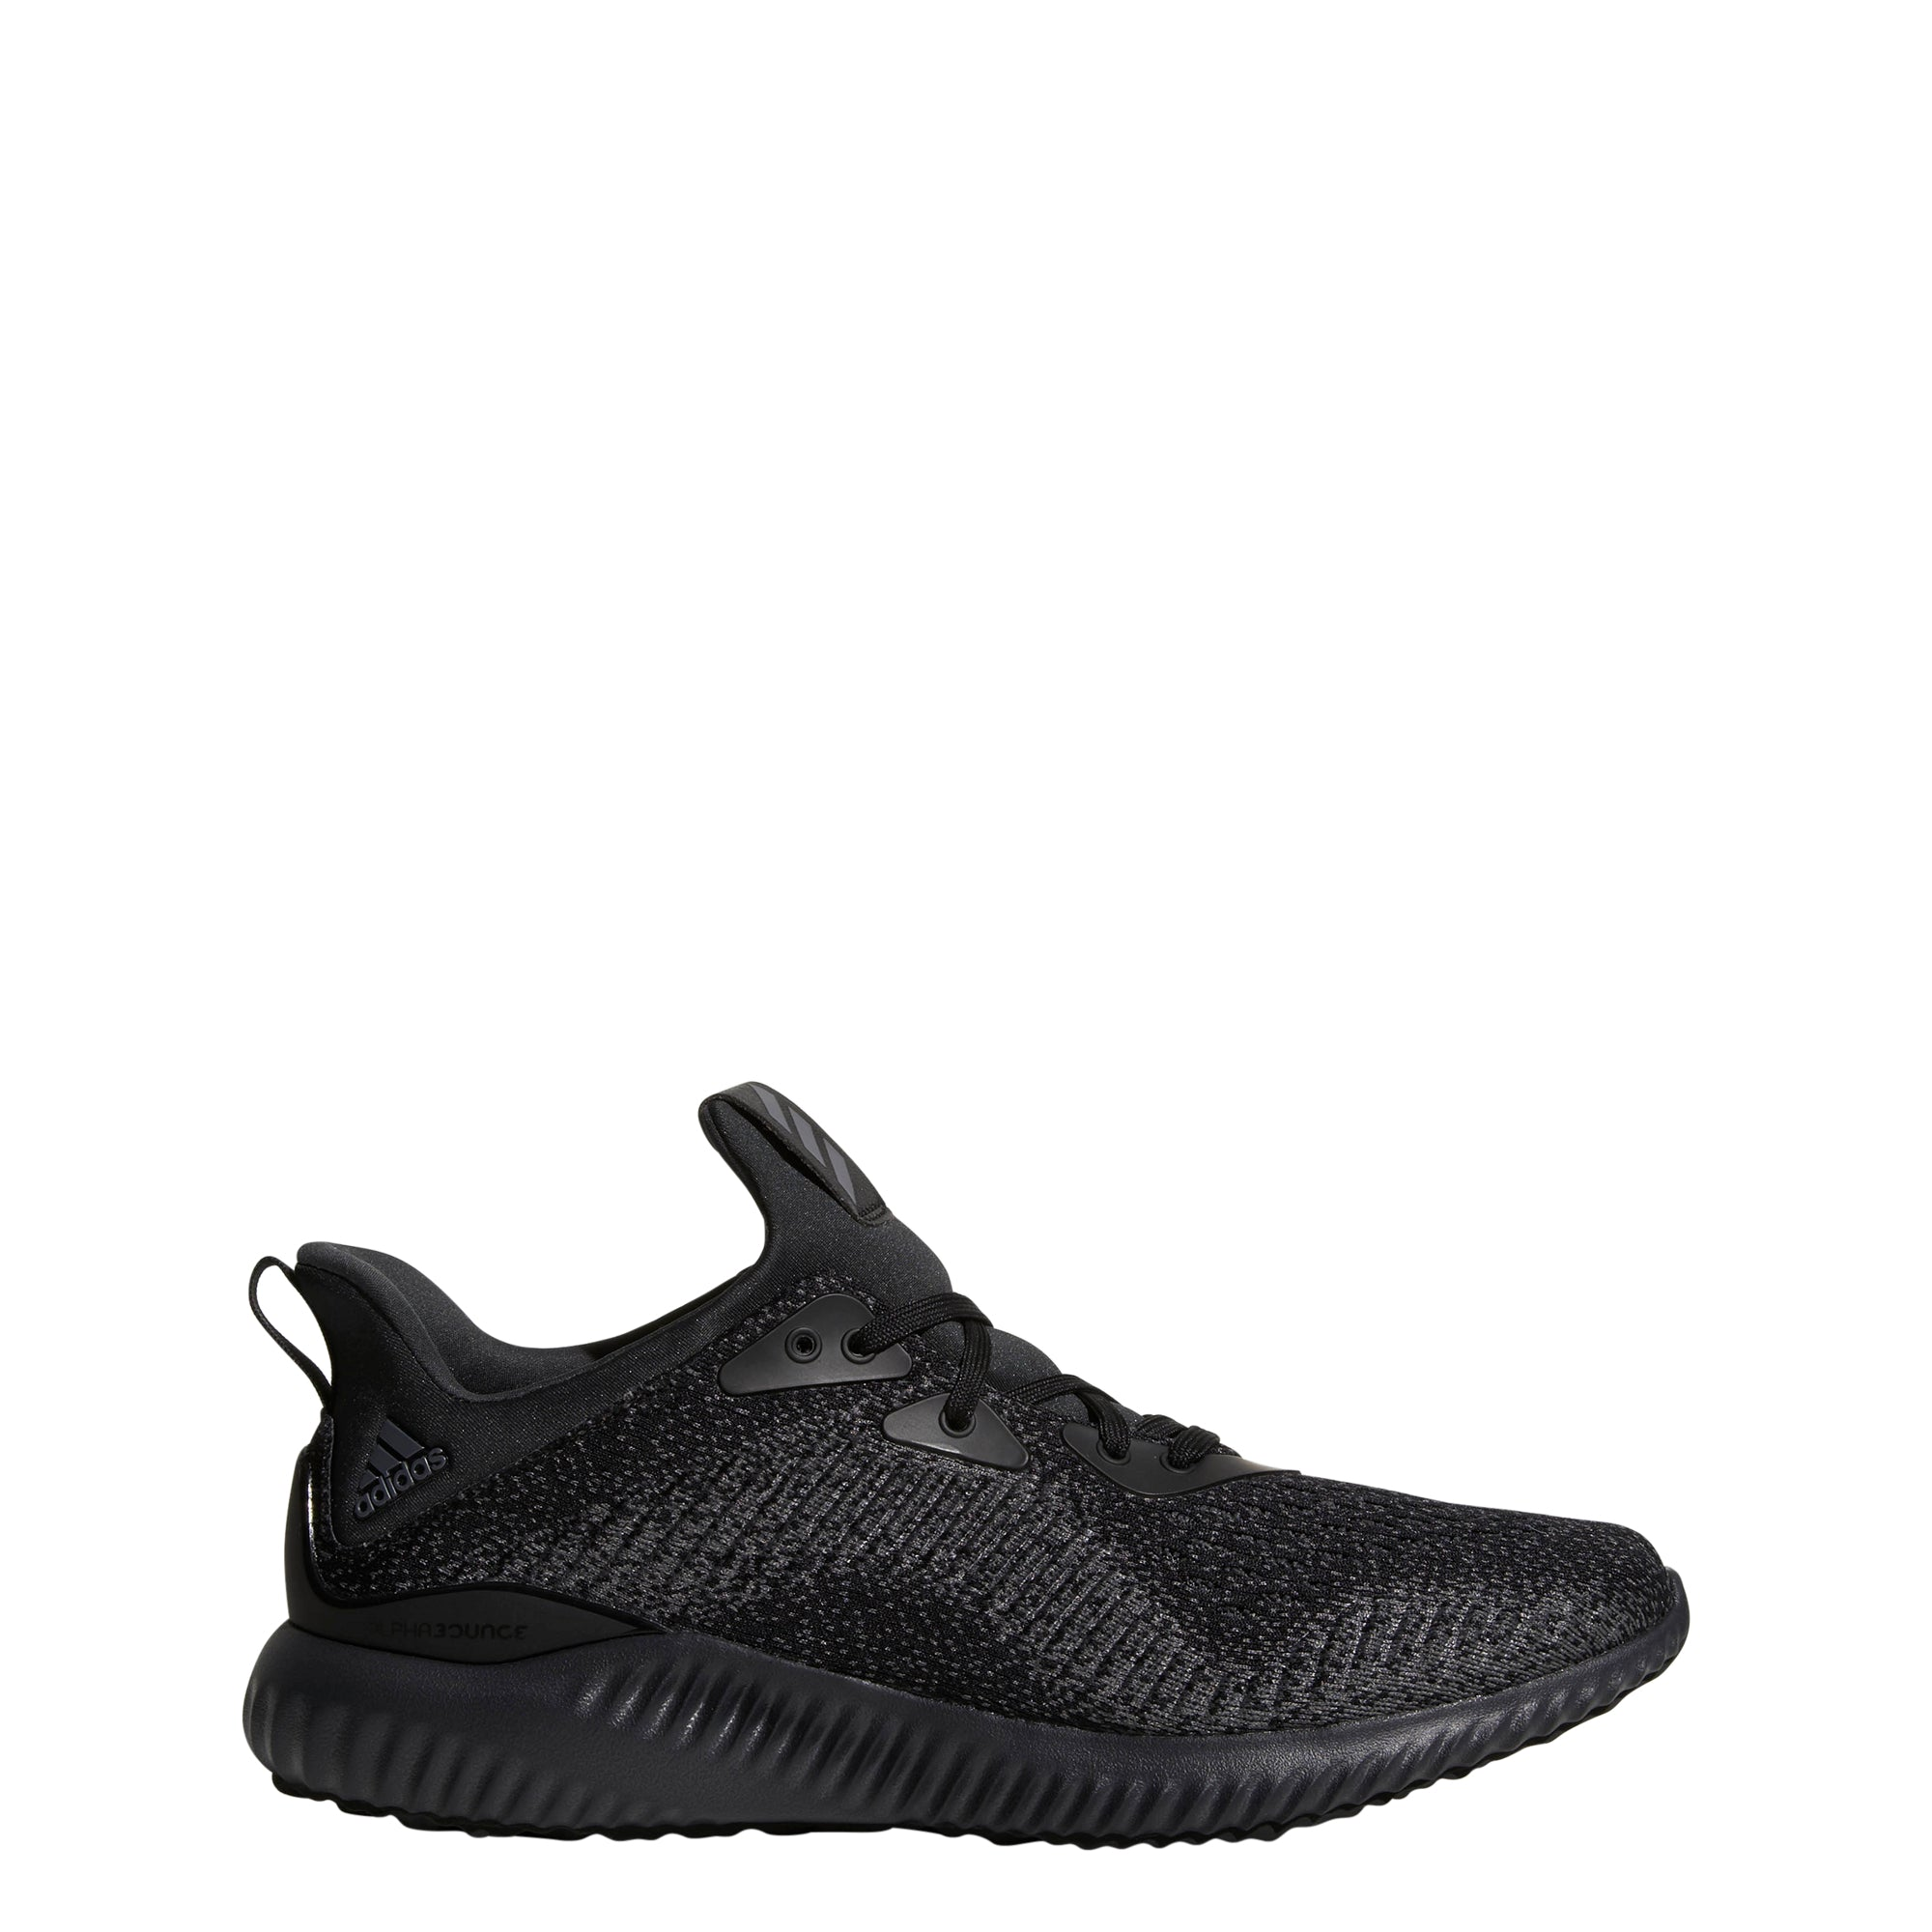 a1965e0b1c87c Buy adidas Men alphabounce em m Running Shoes